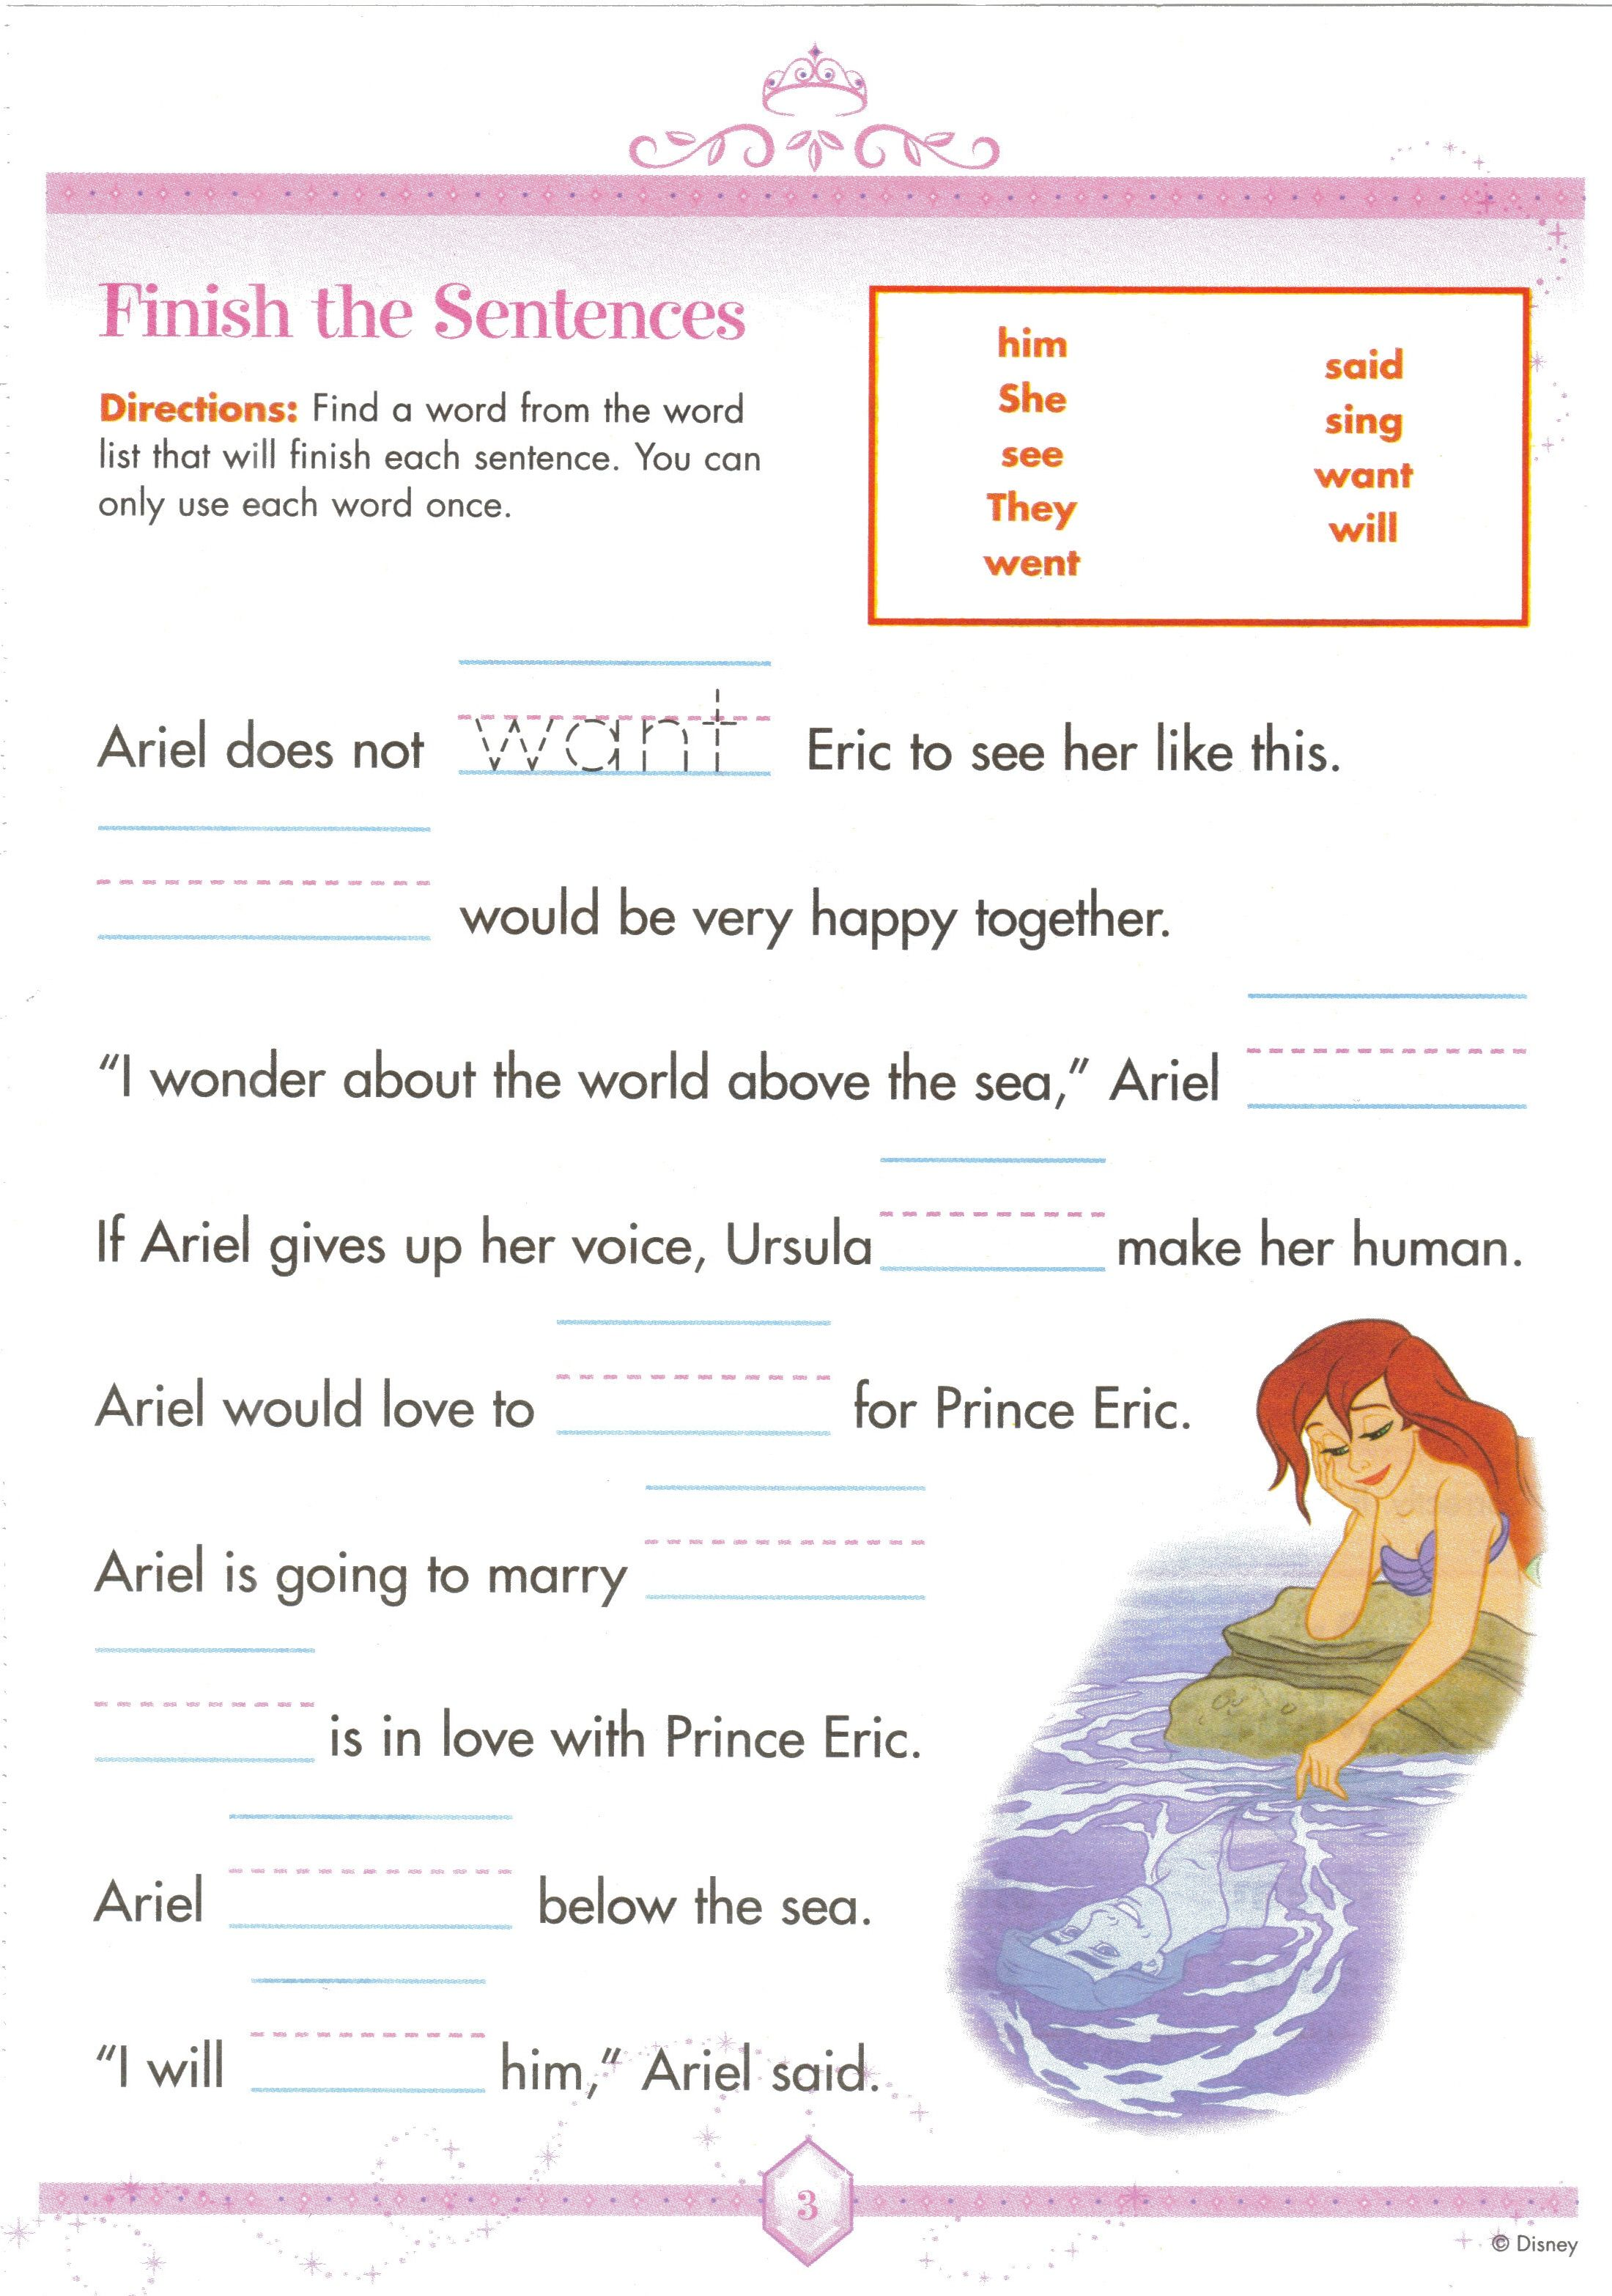 Weirdmailus  Stunning  Images About Worksheets On Pinterest  Fun Facts For Kids  With Excellent  Images About Worksheets On Pinterest  Fun Facts For Kids Earth Day Worksheets And Jungles With Amusing Metrics Worksheet Also St Grade Reading Worksheets Free Printable In Addition Fun Worksheets For Preschoolers And Topographic Profile Worksheet As Well As Easy Geometry Worksheets Additionally Probability Independent And Dependent Events Worksheet From Pinterestcom With Weirdmailus  Excellent  Images About Worksheets On Pinterest  Fun Facts For Kids  With Amusing  Images About Worksheets On Pinterest  Fun Facts For Kids Earth Day Worksheets And Jungles And Stunning Metrics Worksheet Also St Grade Reading Worksheets Free Printable In Addition Fun Worksheets For Preschoolers From Pinterestcom